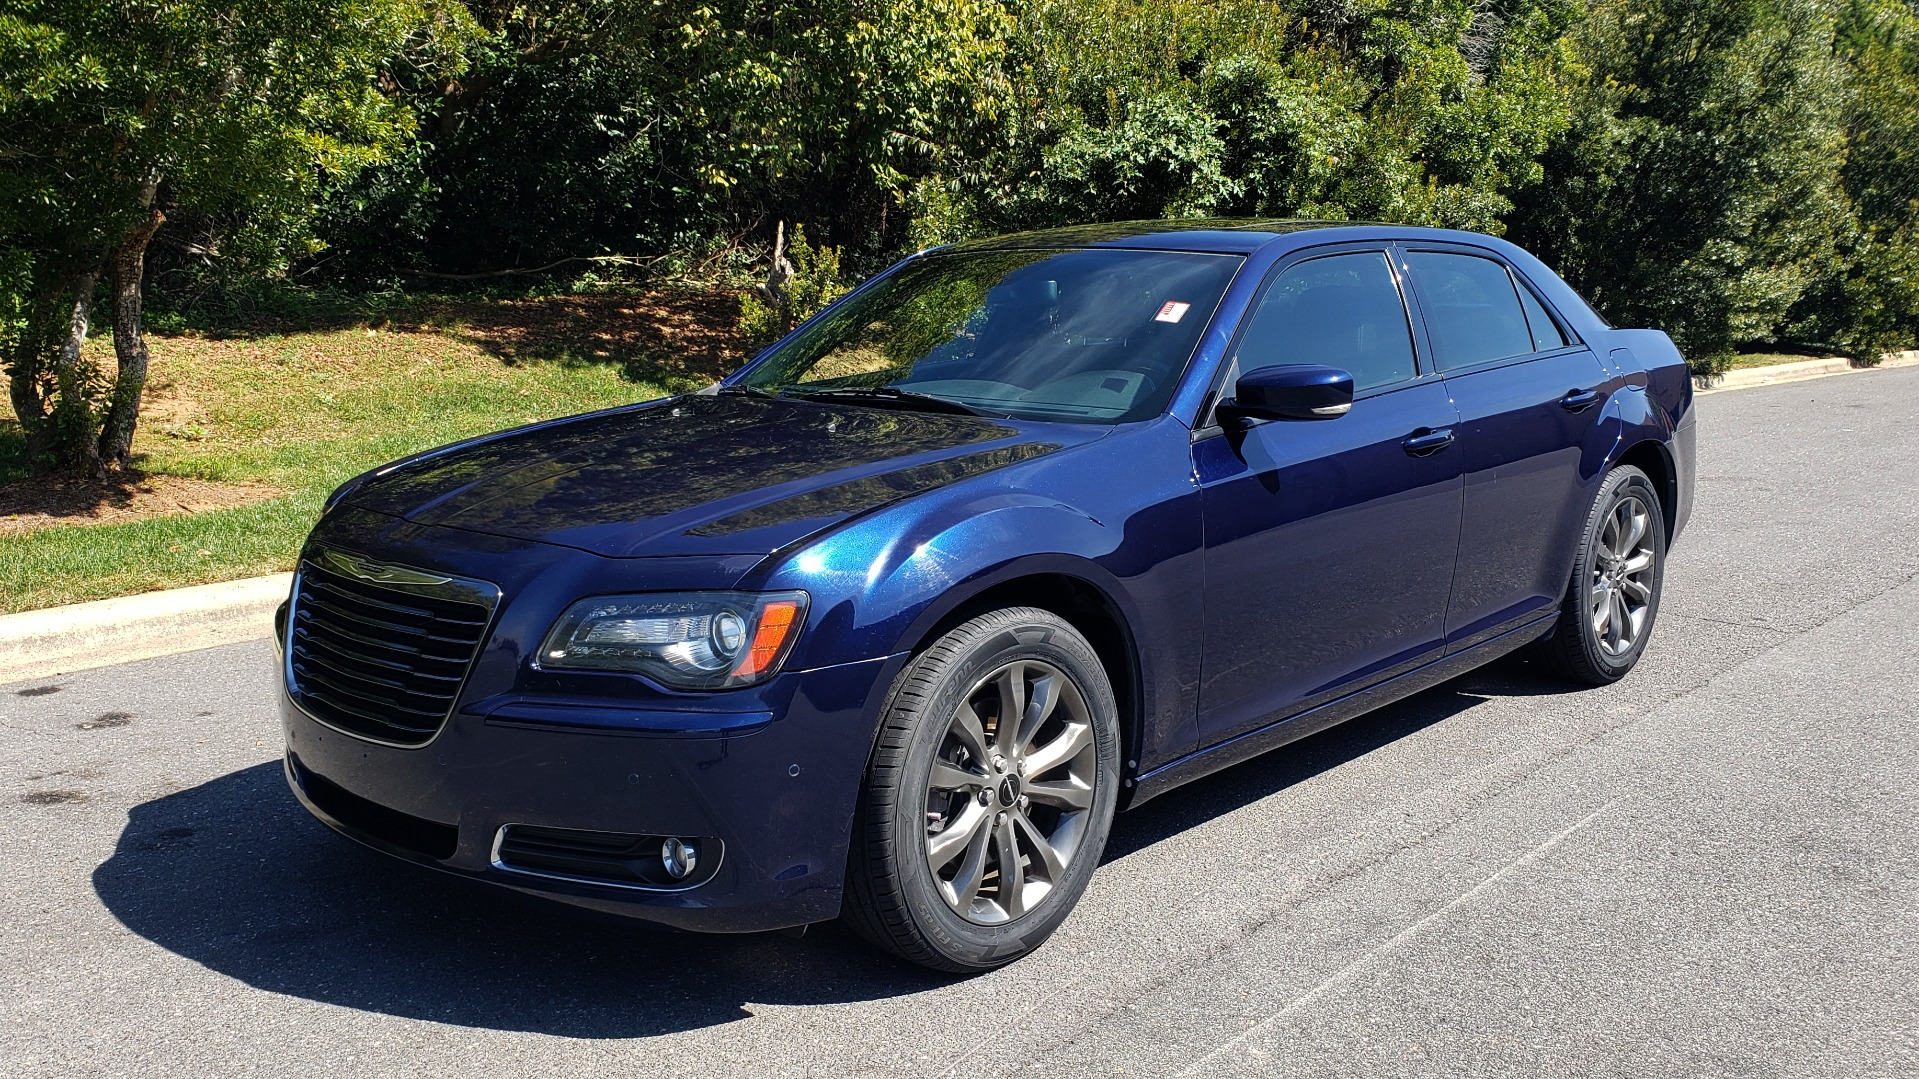 Used 2014 Chrysler 300 S AWD / SAFETY TEC / BLIND SPOT / LIGHT GRP / LUXURY GRP for sale $13,995 at Formula Imports in Charlotte NC 28227 3